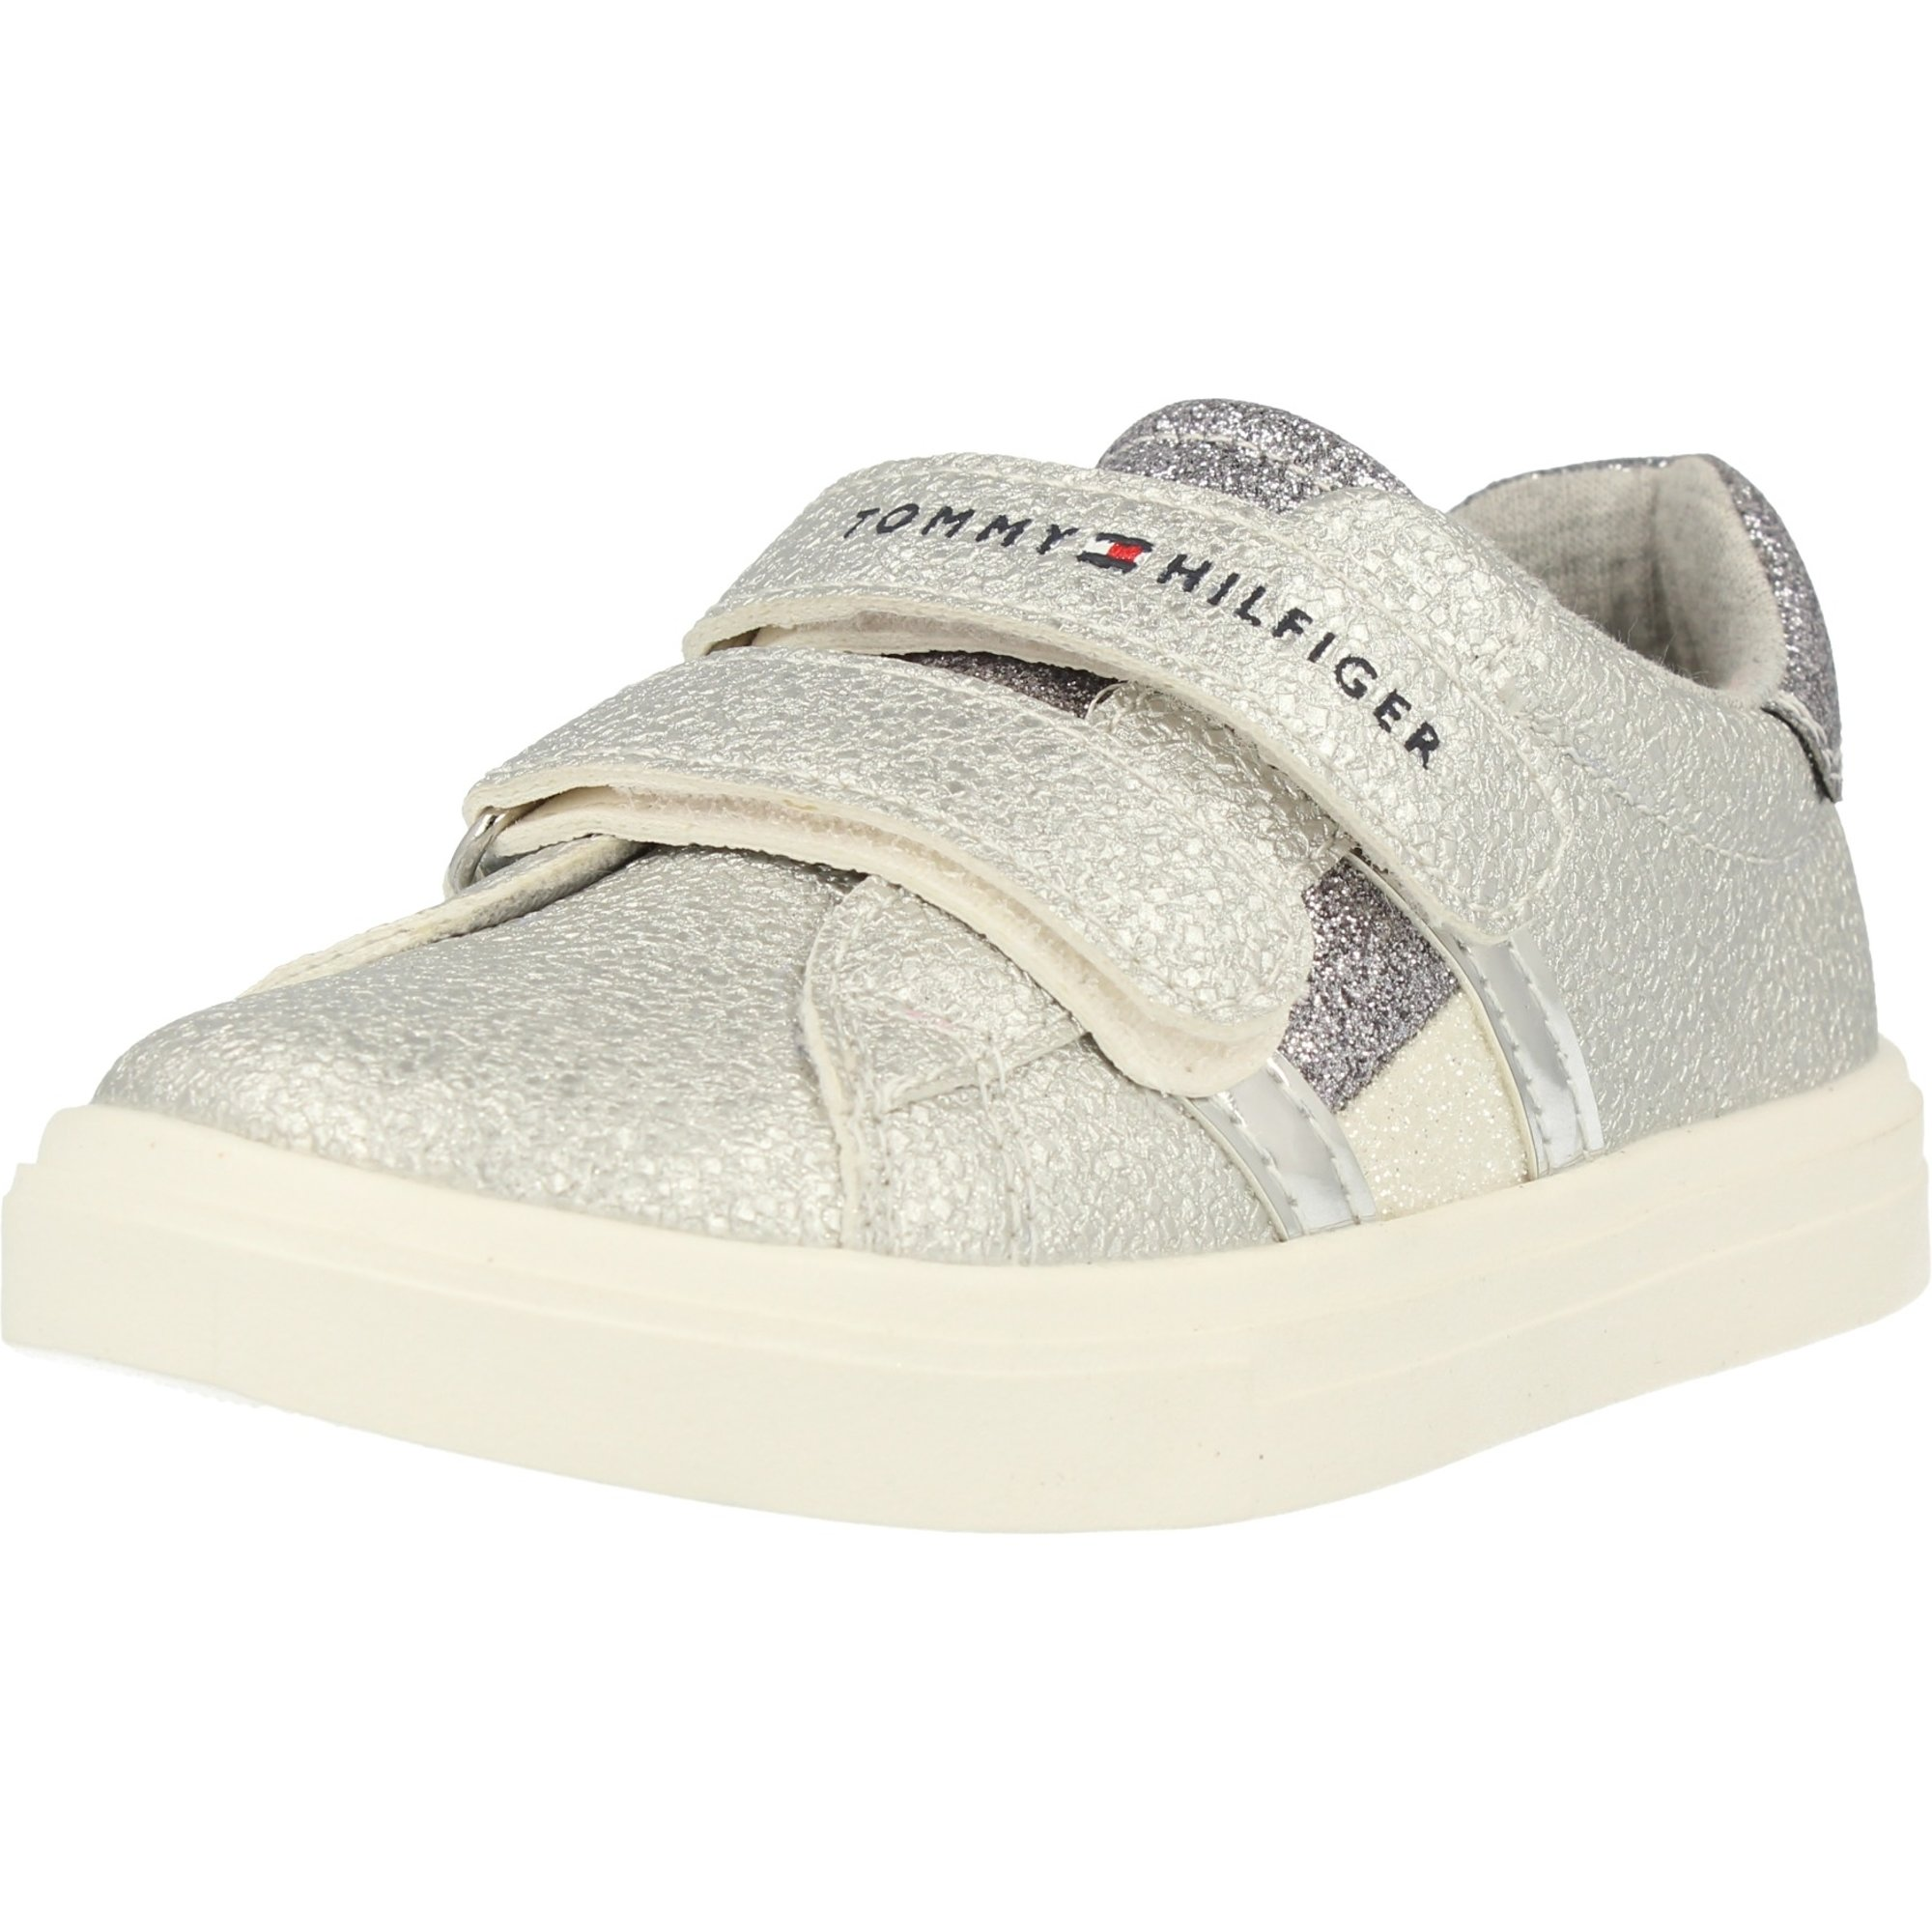 Tommy Hilfiger T1A4-30287-0582 Silver Eco Leather Infant